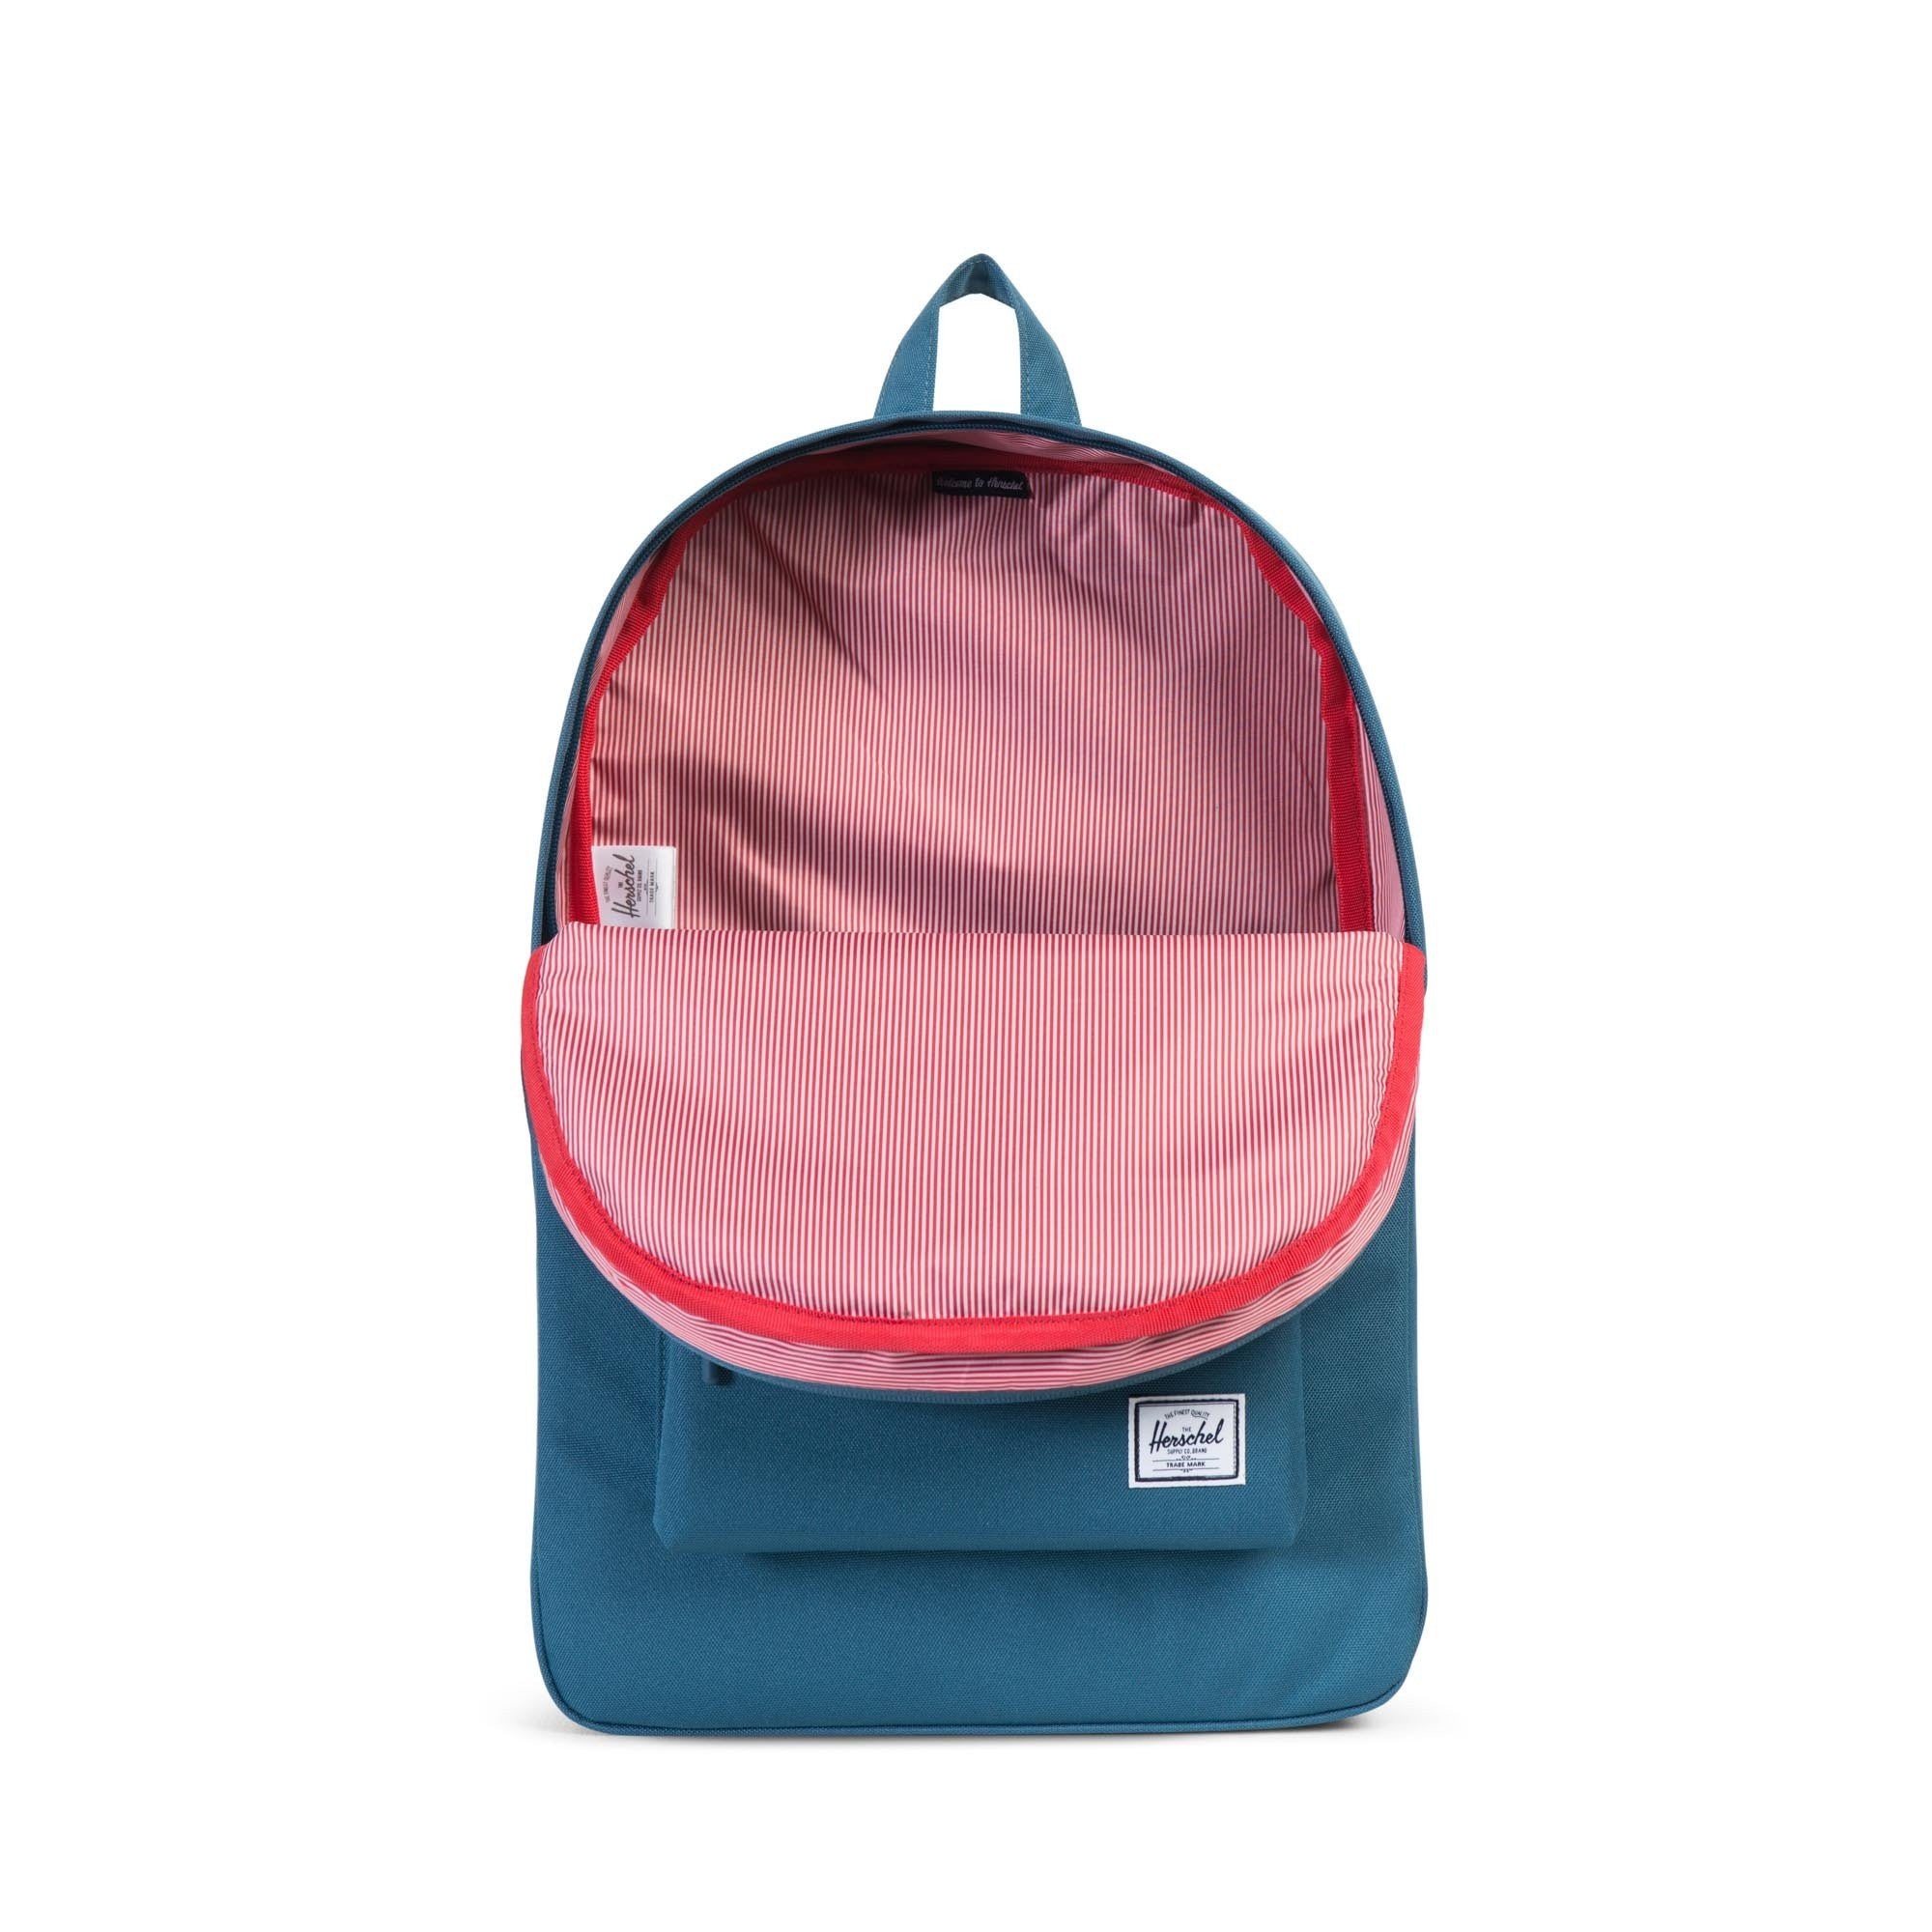 Herschel Supply Co. - Classic Backpack, Indian Teal - The Giant Peach - 2